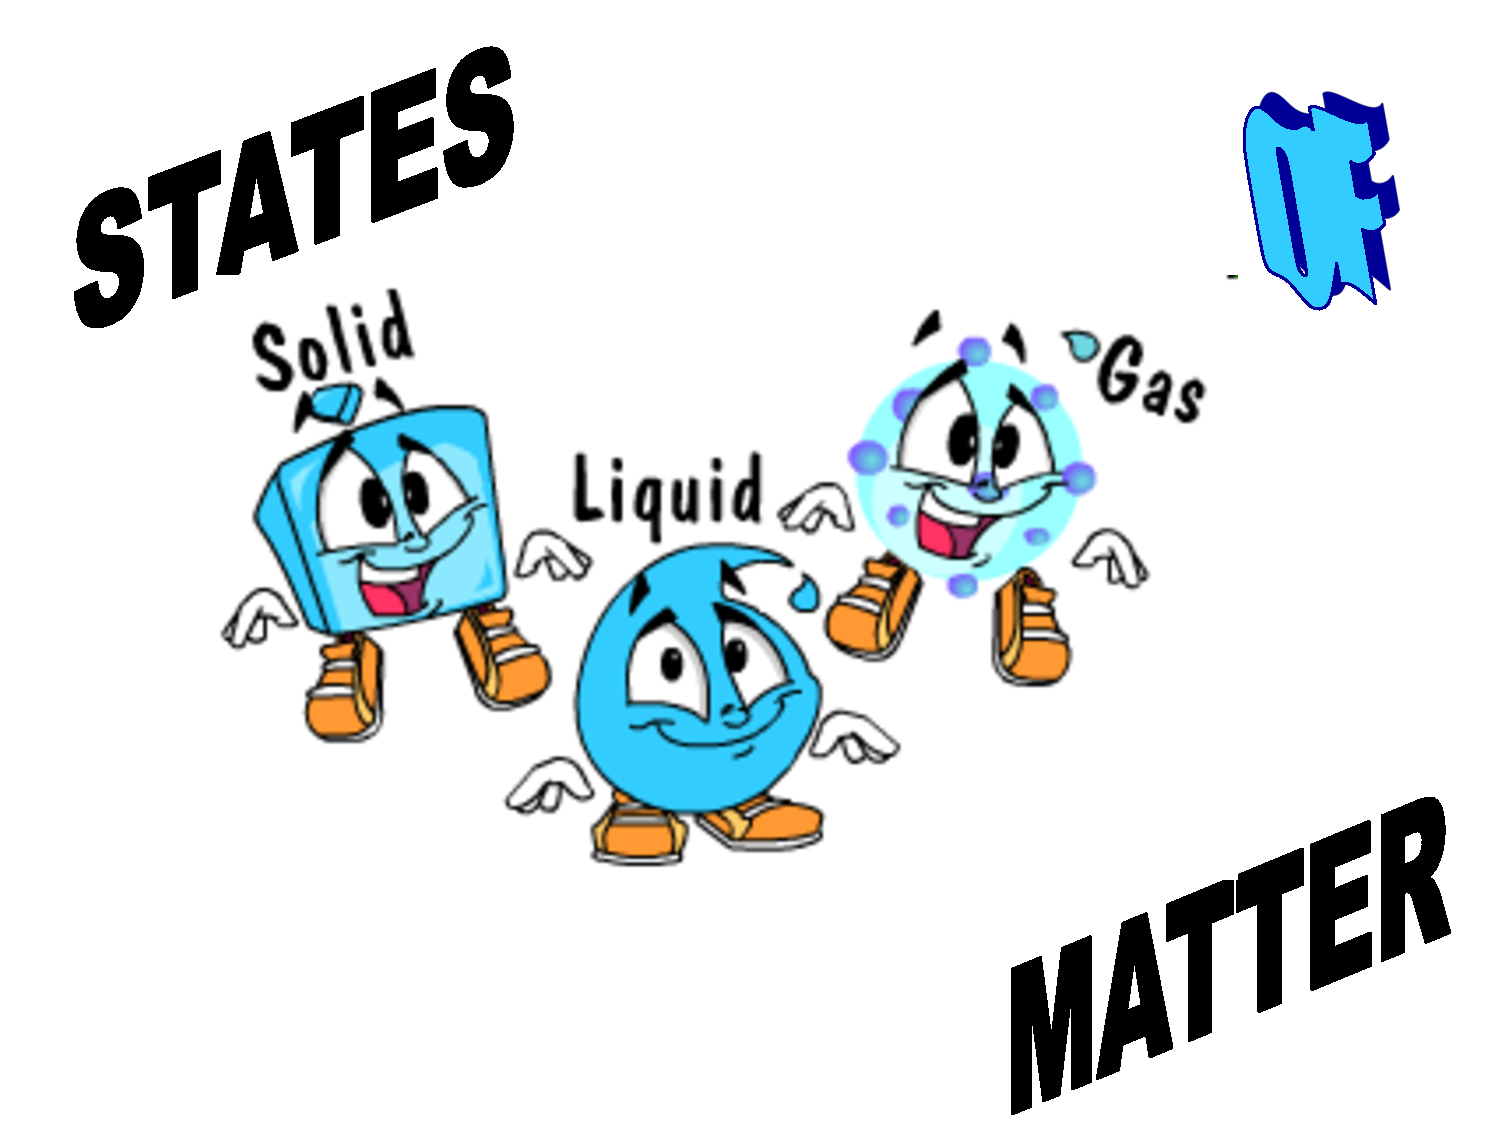 1000+ images about 3 States of matter on Pinterest | Science ... clipart download